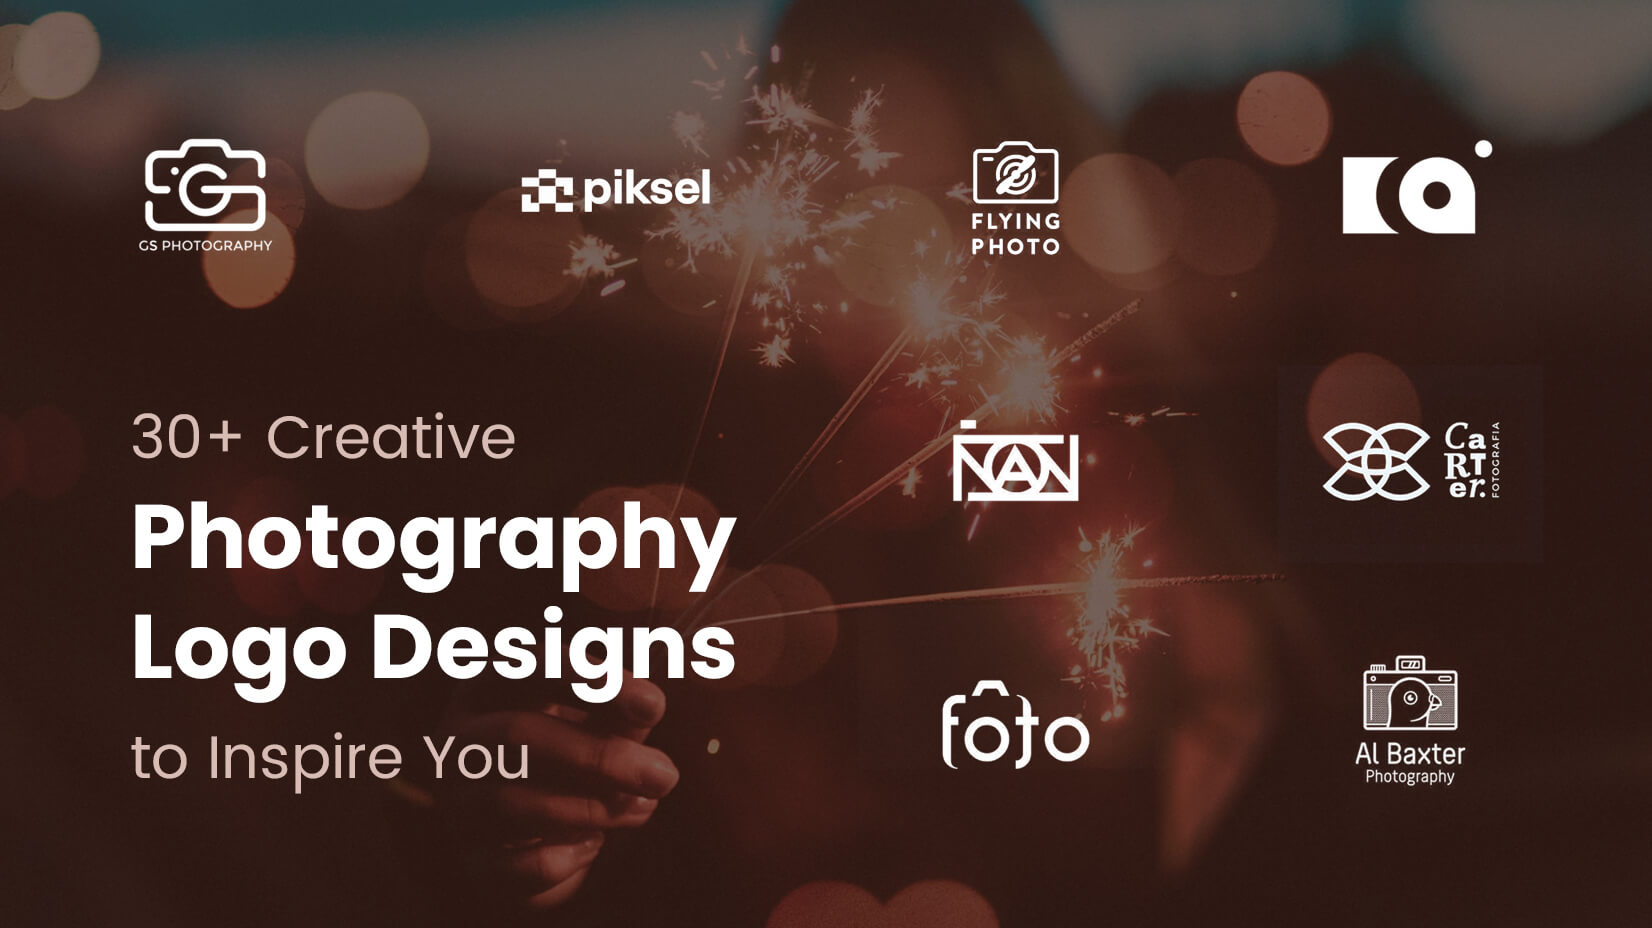 Creative Photography Logo Design Ideas to Inspire You